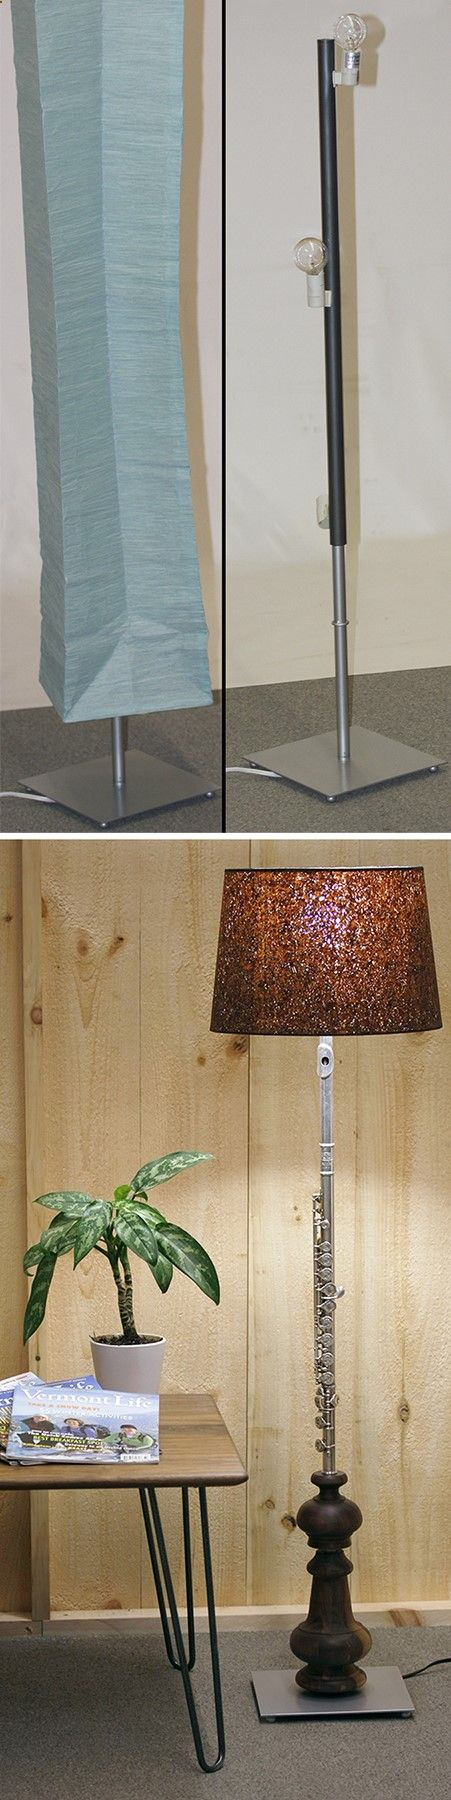 Flute Floor Lamp. This lamp was crying out for a makeover. Using just the bottom base, we added two black walnut bun feet, an old high school band flute and a cork shade that was stained to match the bun feet. We call this lamp, Light on Our Feet! Bun feet make great lamp bases with endless design combinations of shapes and wood species. By drilling a hole down through the center, you make an instant electrical cord channel. Design your perfect lamp for your home decor.